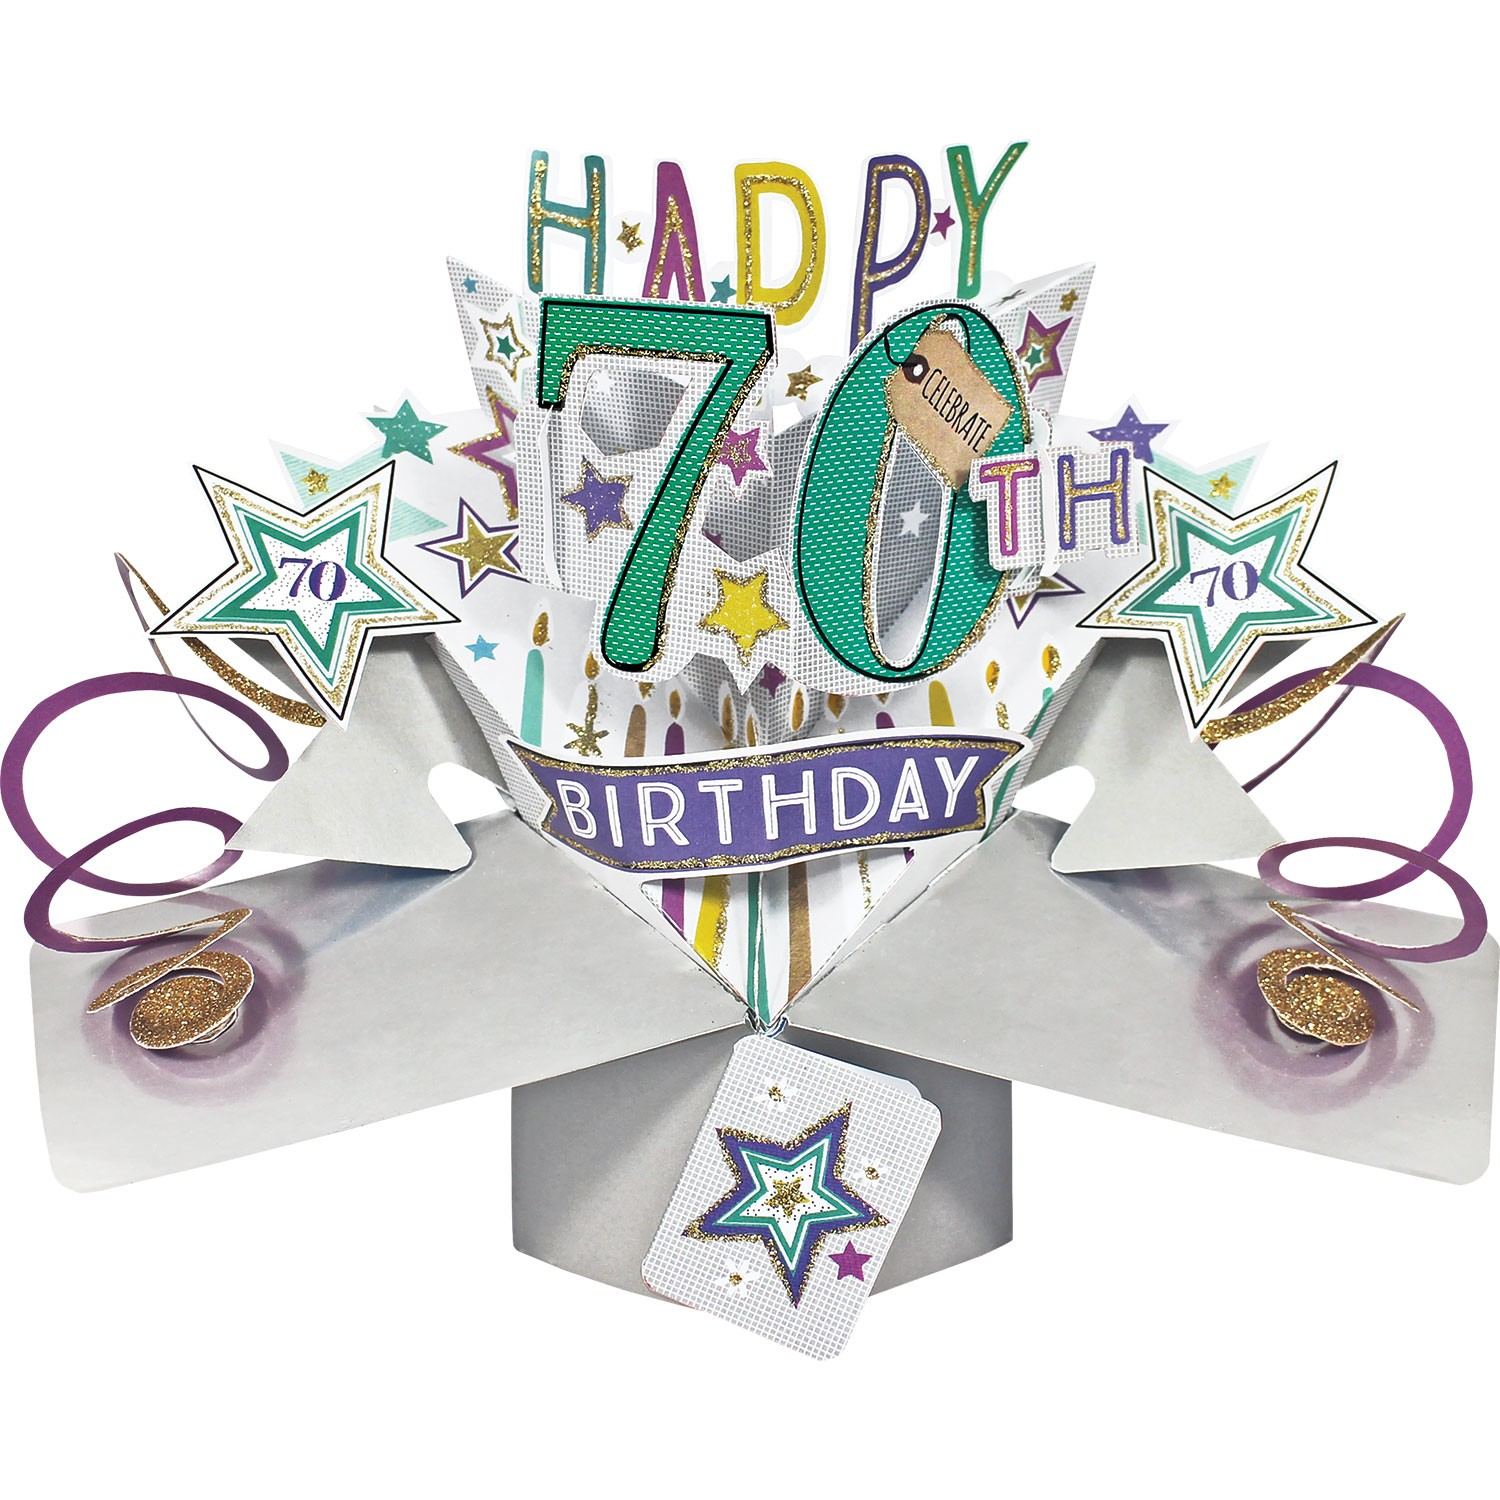 3D Pop Up Card 70th Birthday